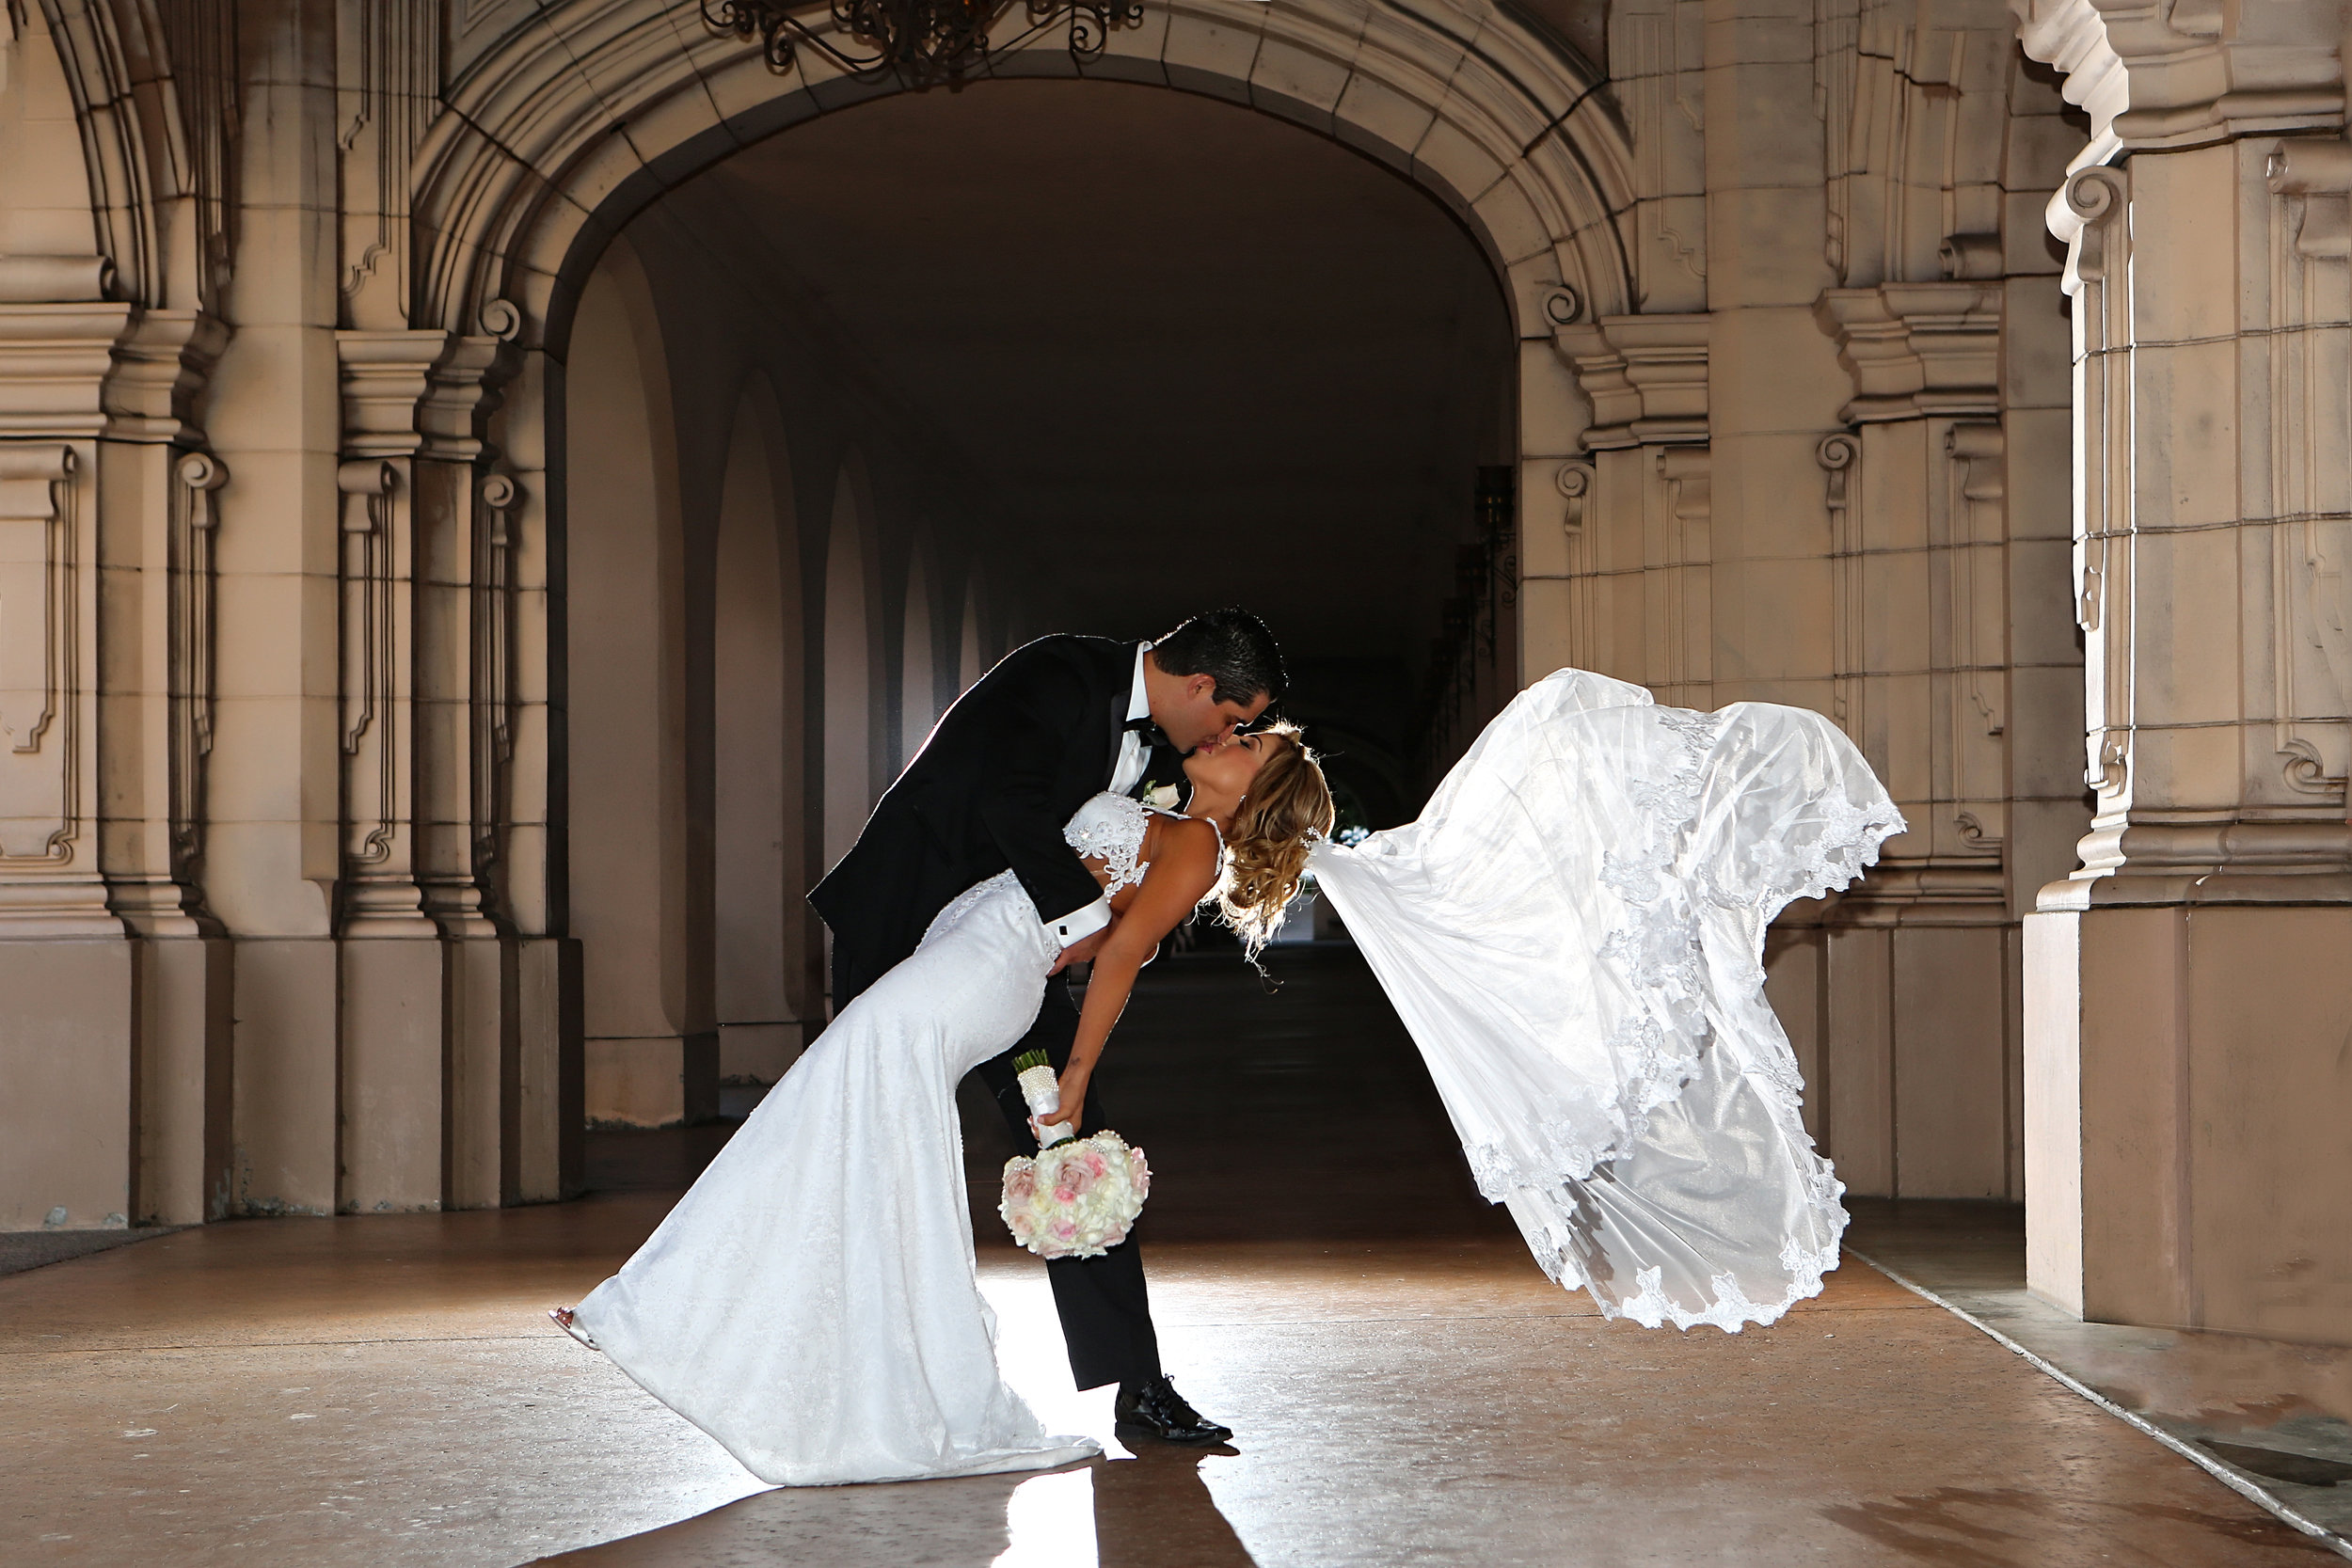 ShadowcatcherGalleryOne_SanDiegoWeddingPhotogrpaher_002.JPG